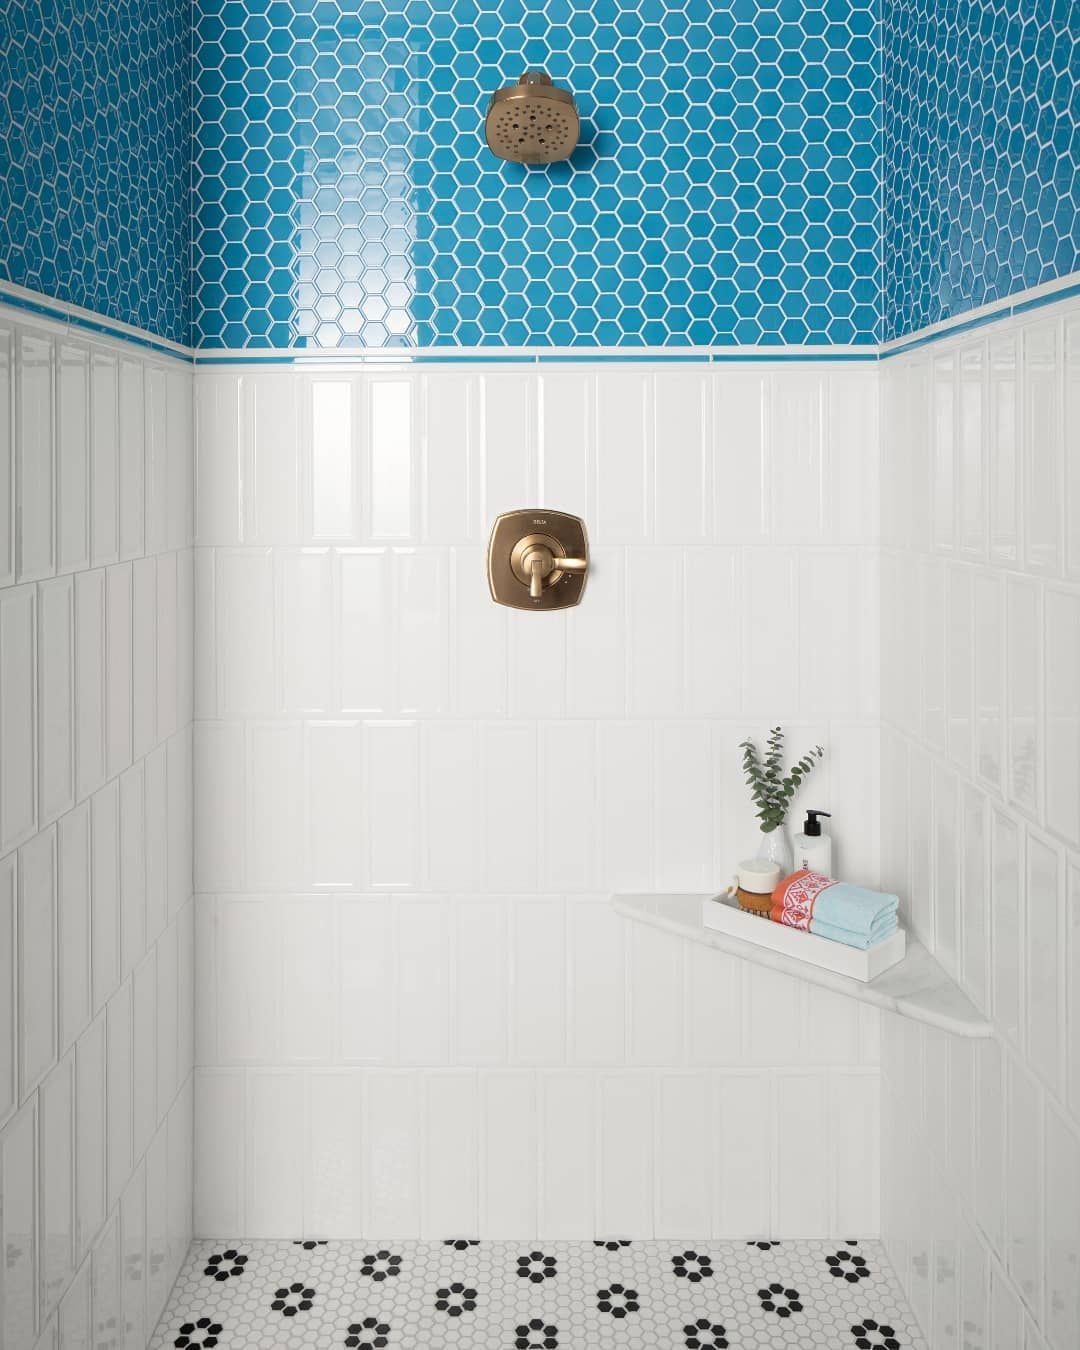 Something Bright Blue Shiny And New Bathroom Wall Tile Design Bathroom Decor Colors Small Bathroom Layout